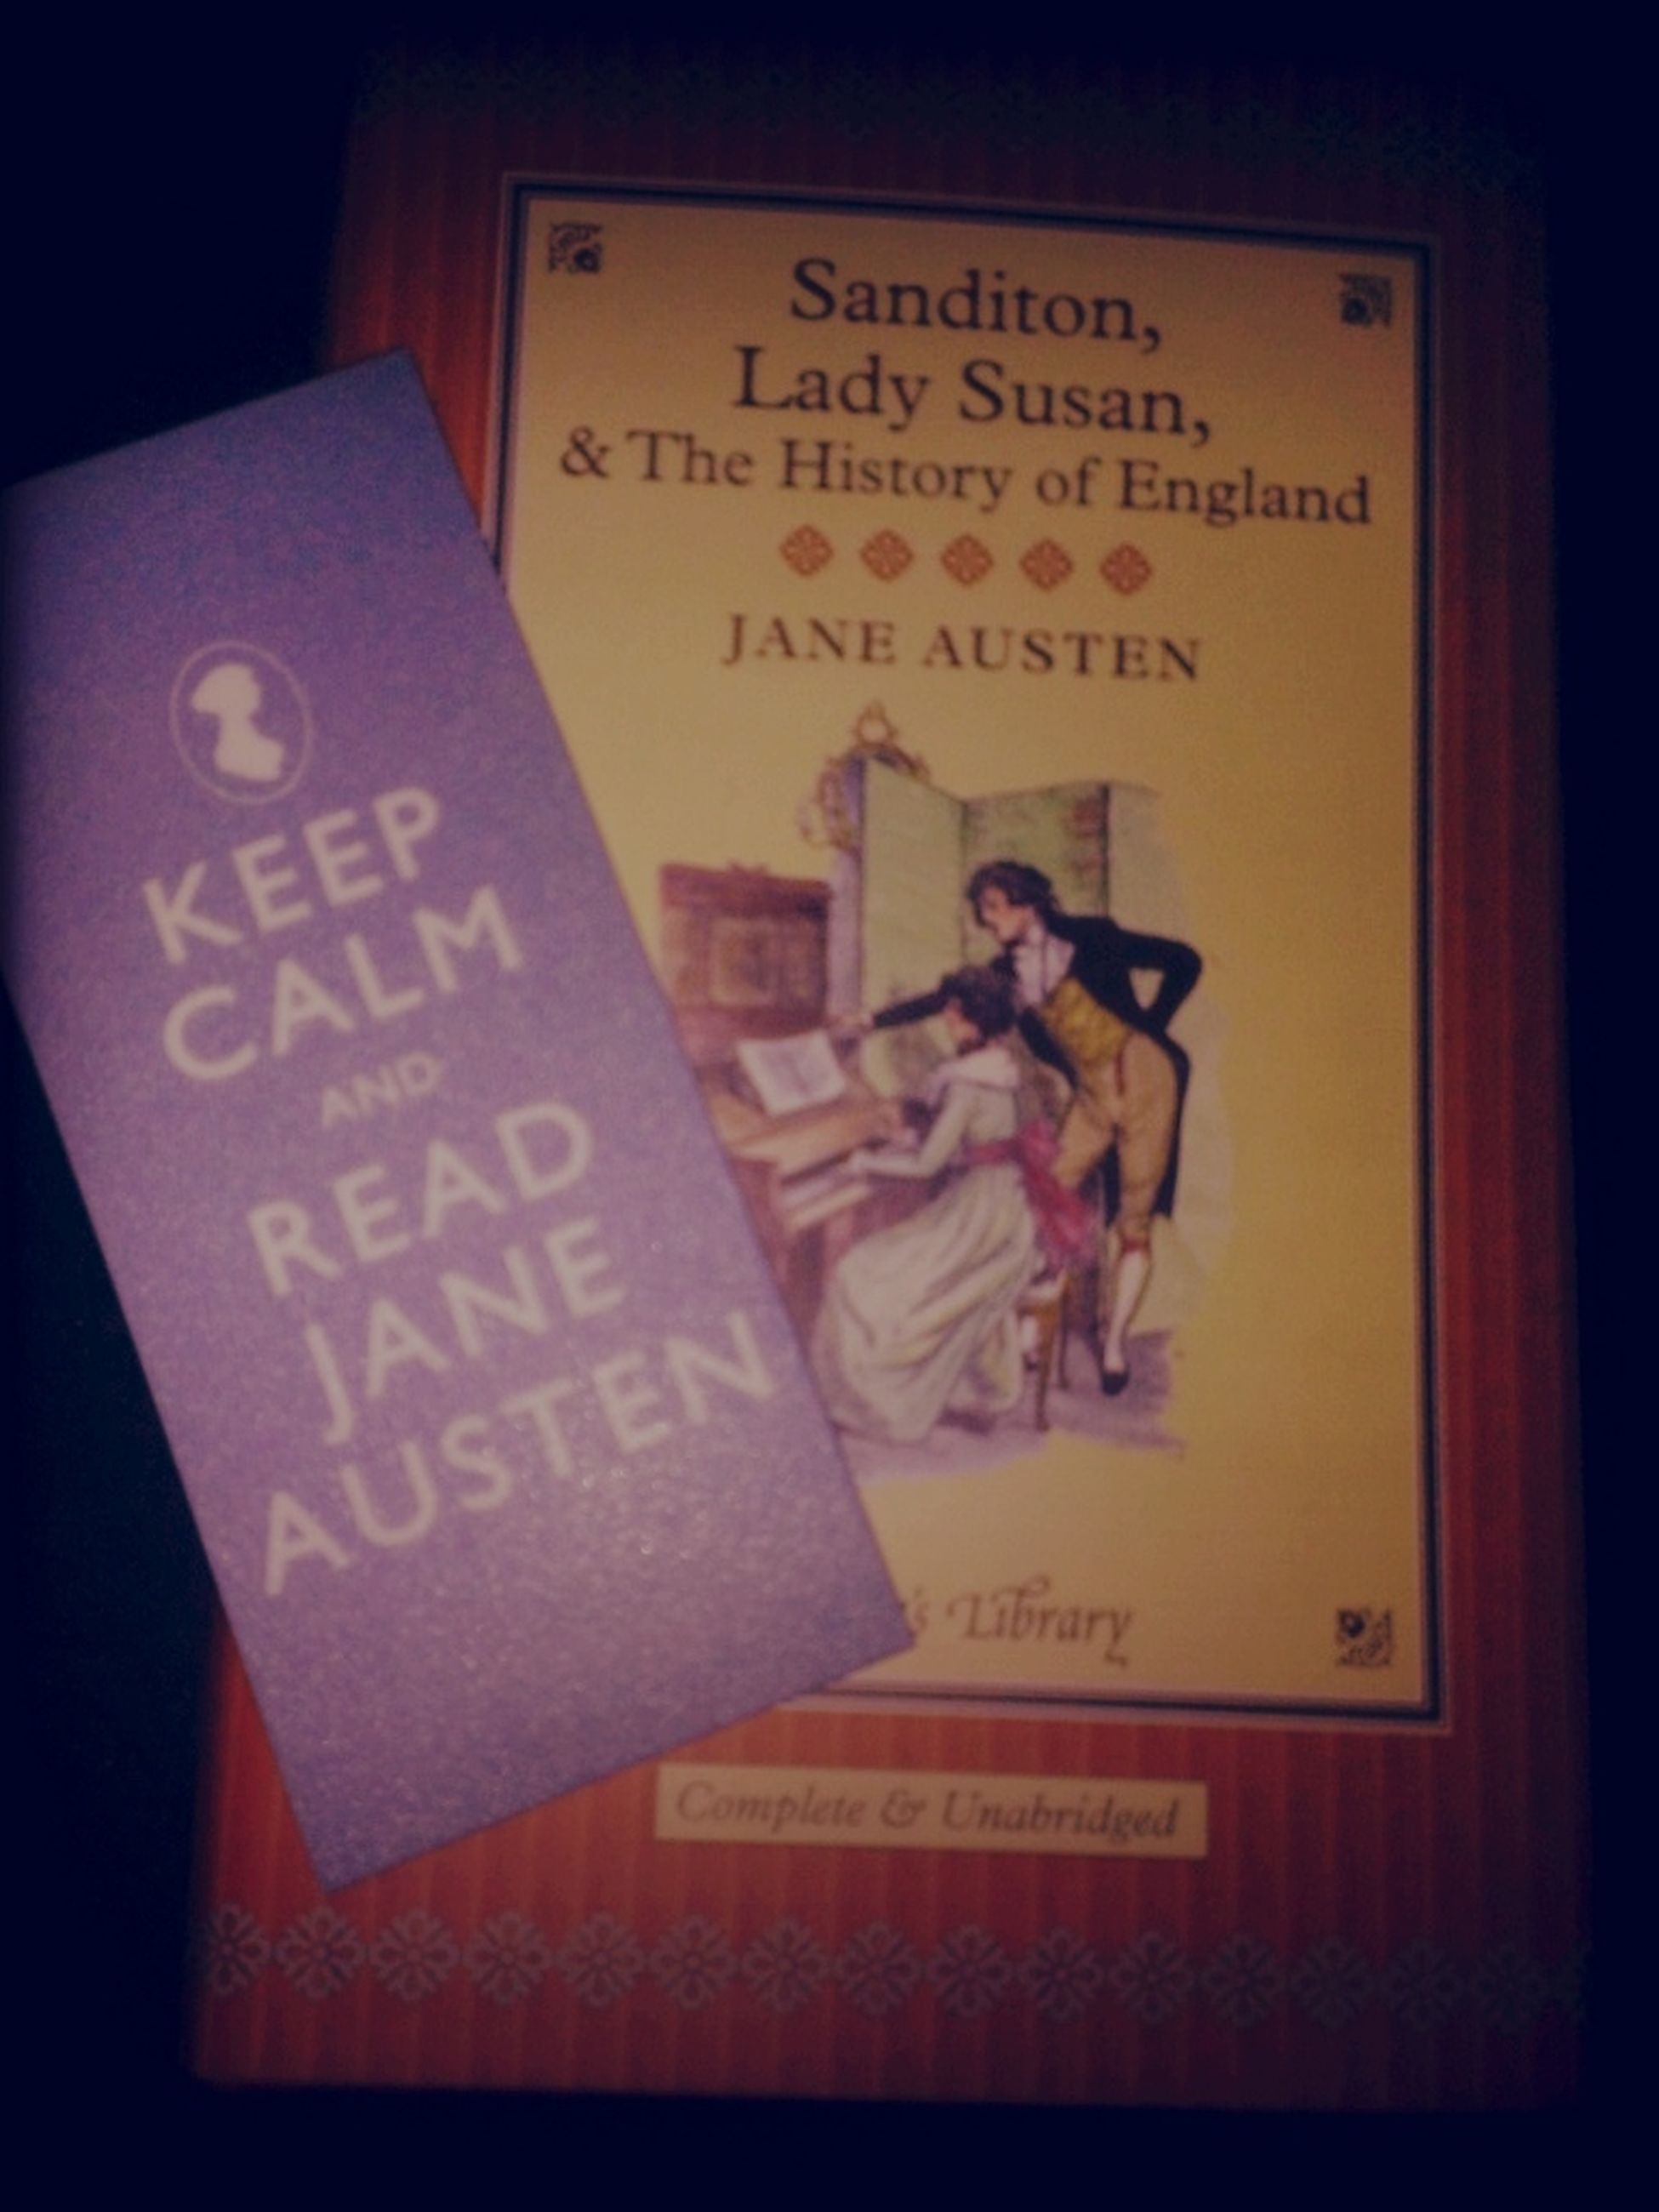 Keepcalmandreadjaneausten